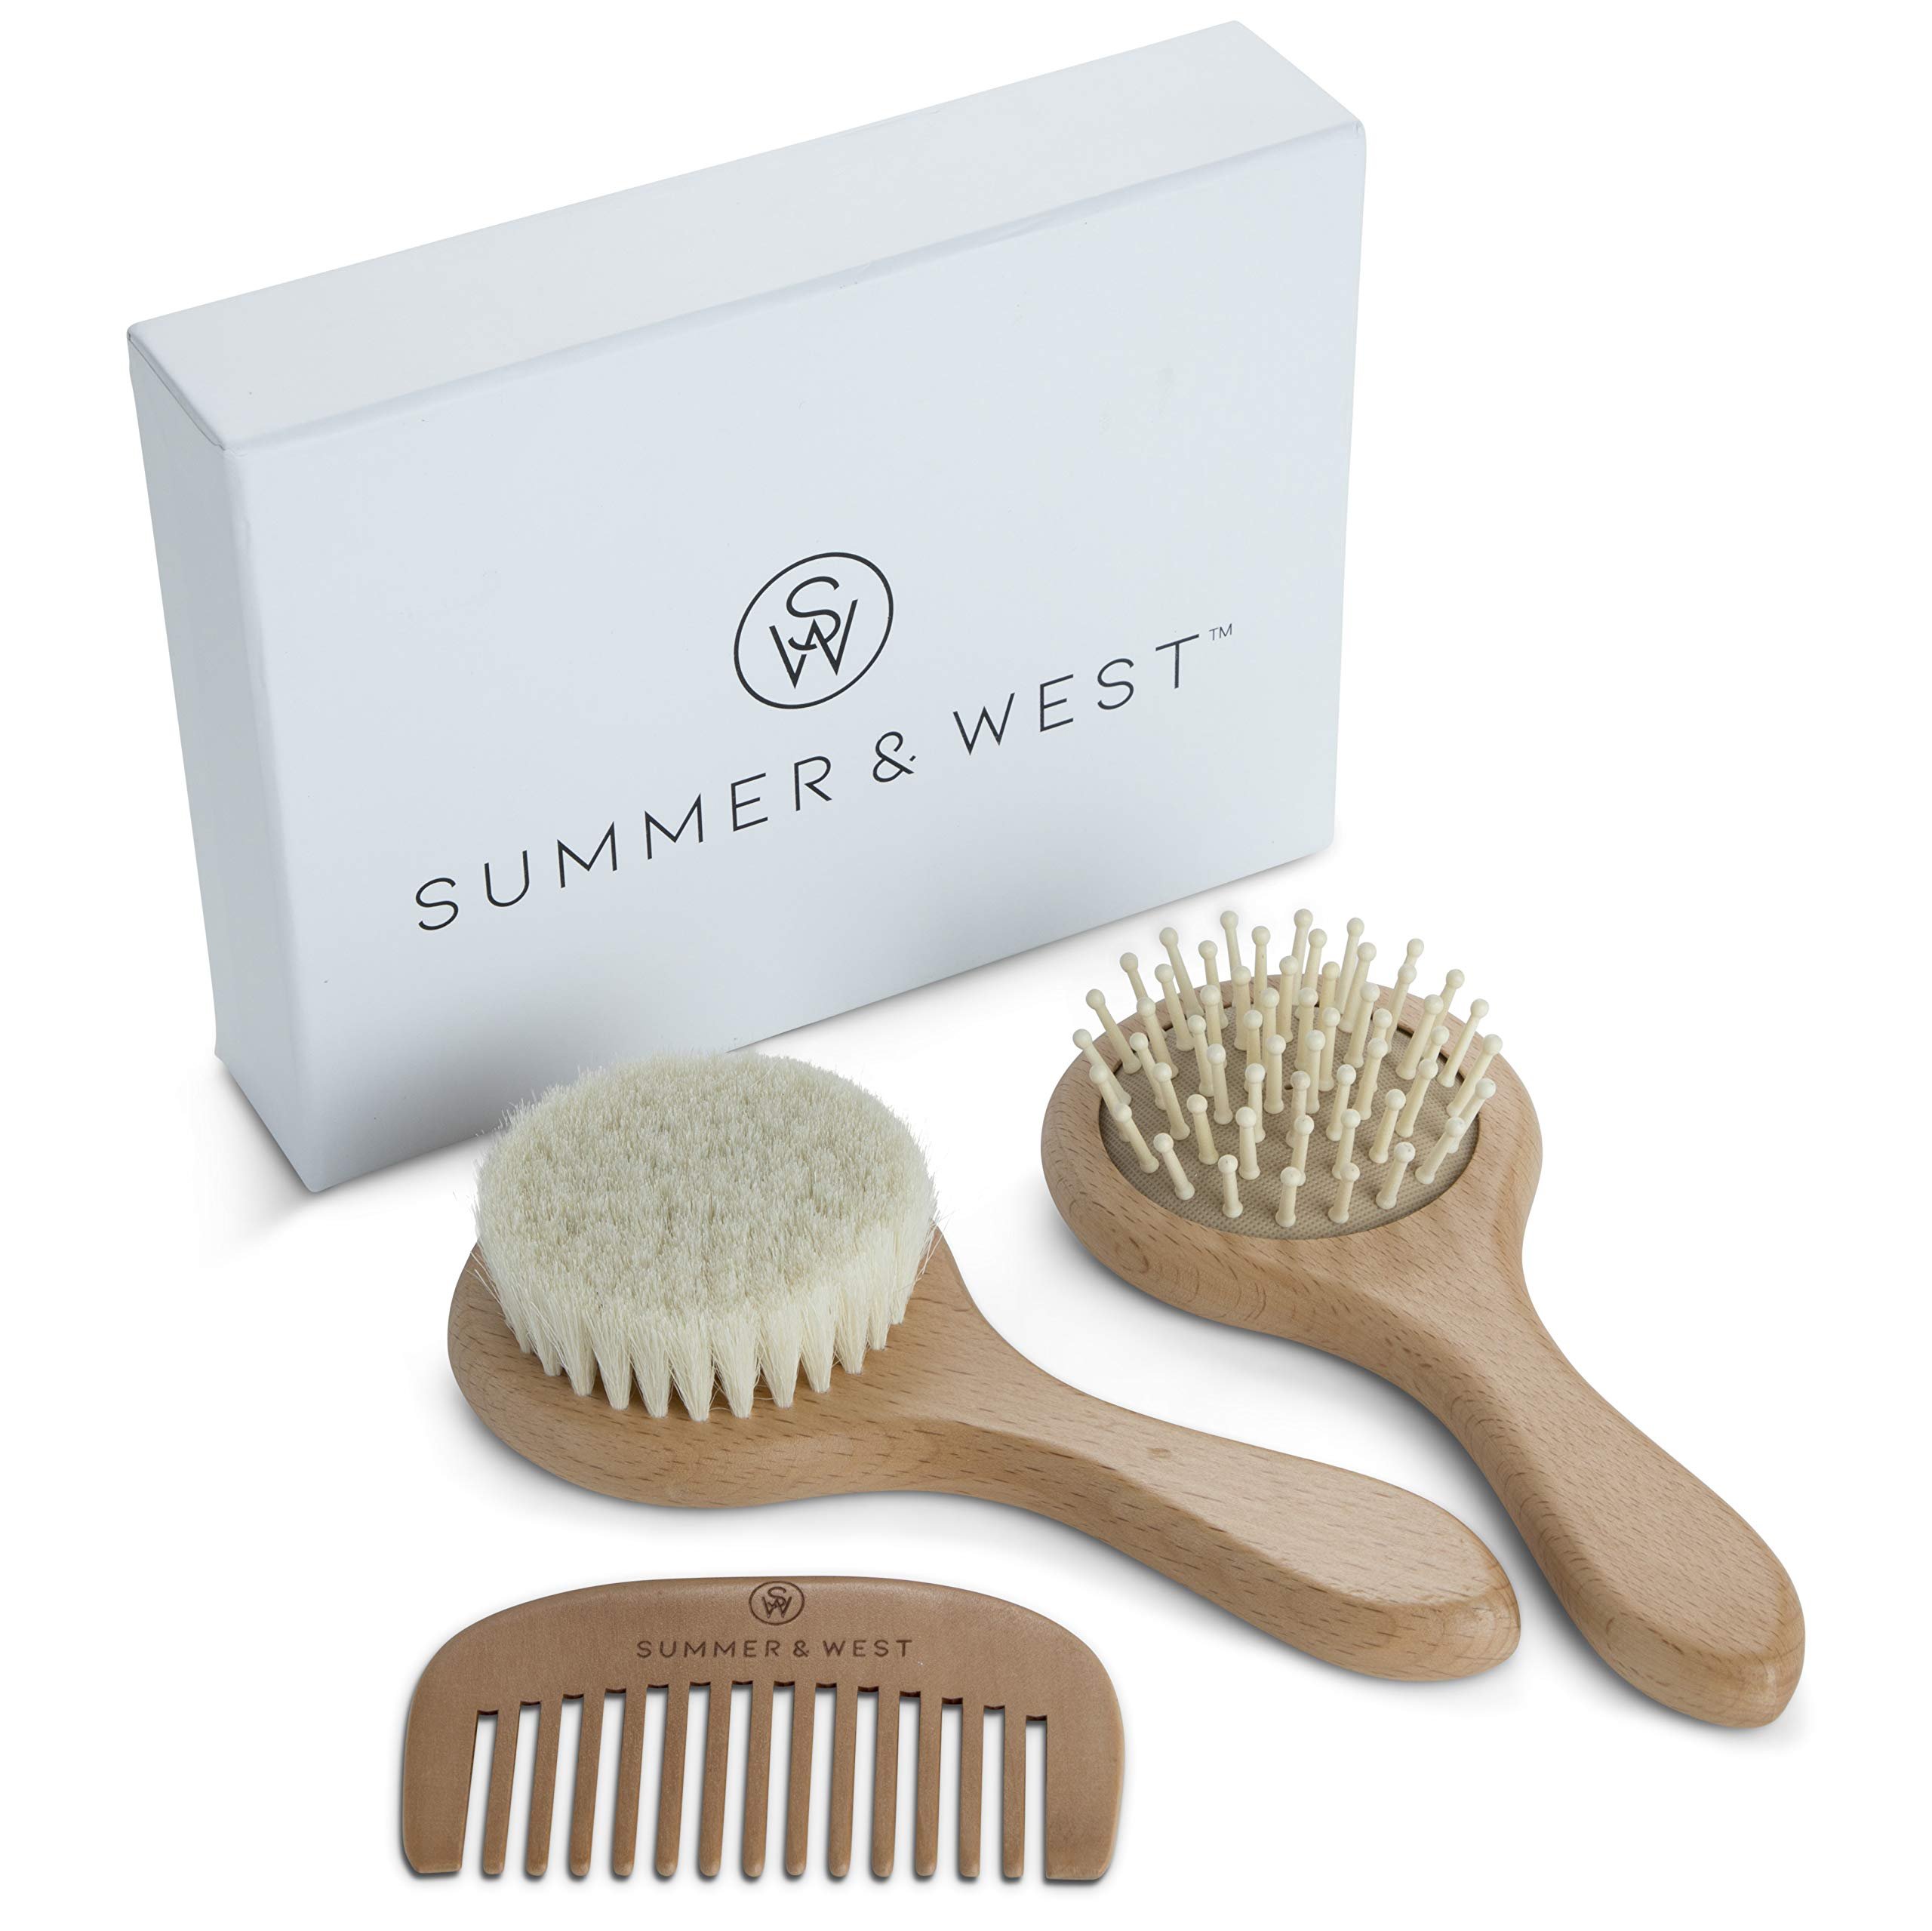 SW-Natural Wooden Baby Brush and Comb Set - Premium Baby Brush Set Newborn Toddler by SW SUMMER & WEST